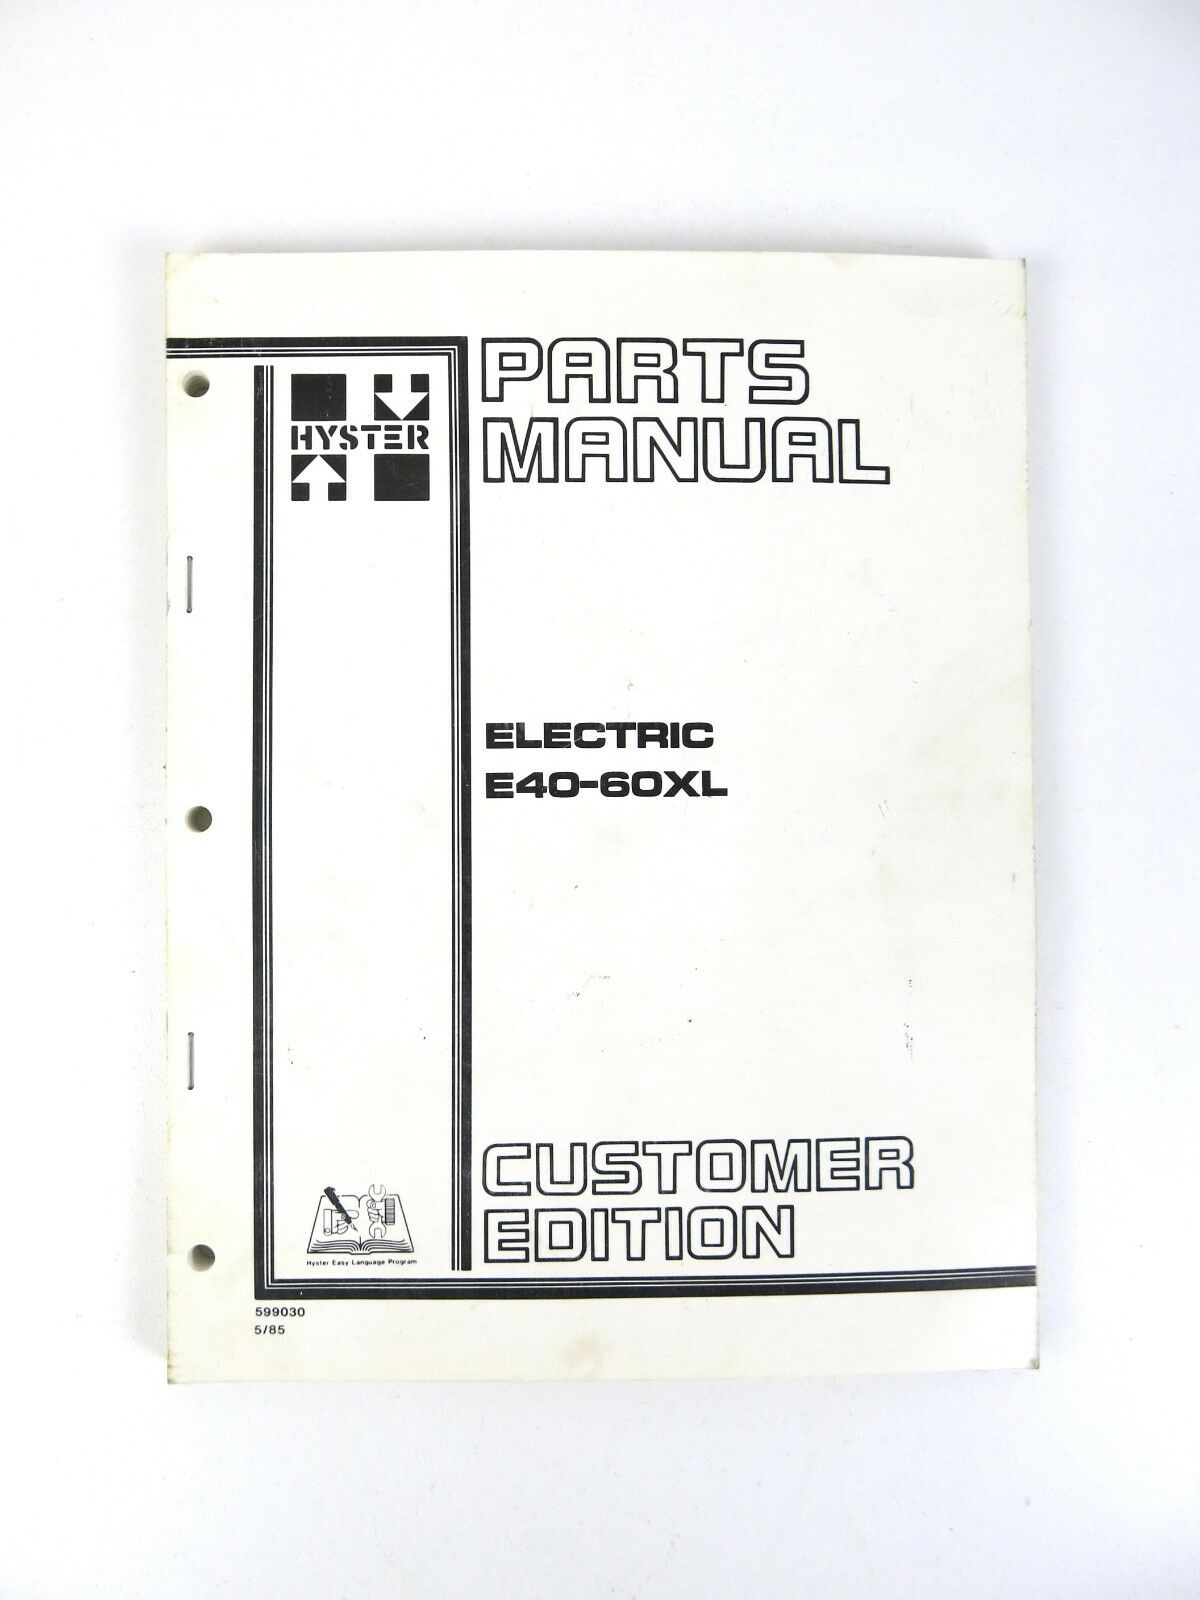 Hyster Forklift Parts Manual E40 50 60XL 36/48 Volt 1985 1 of 1Only 1  available ...